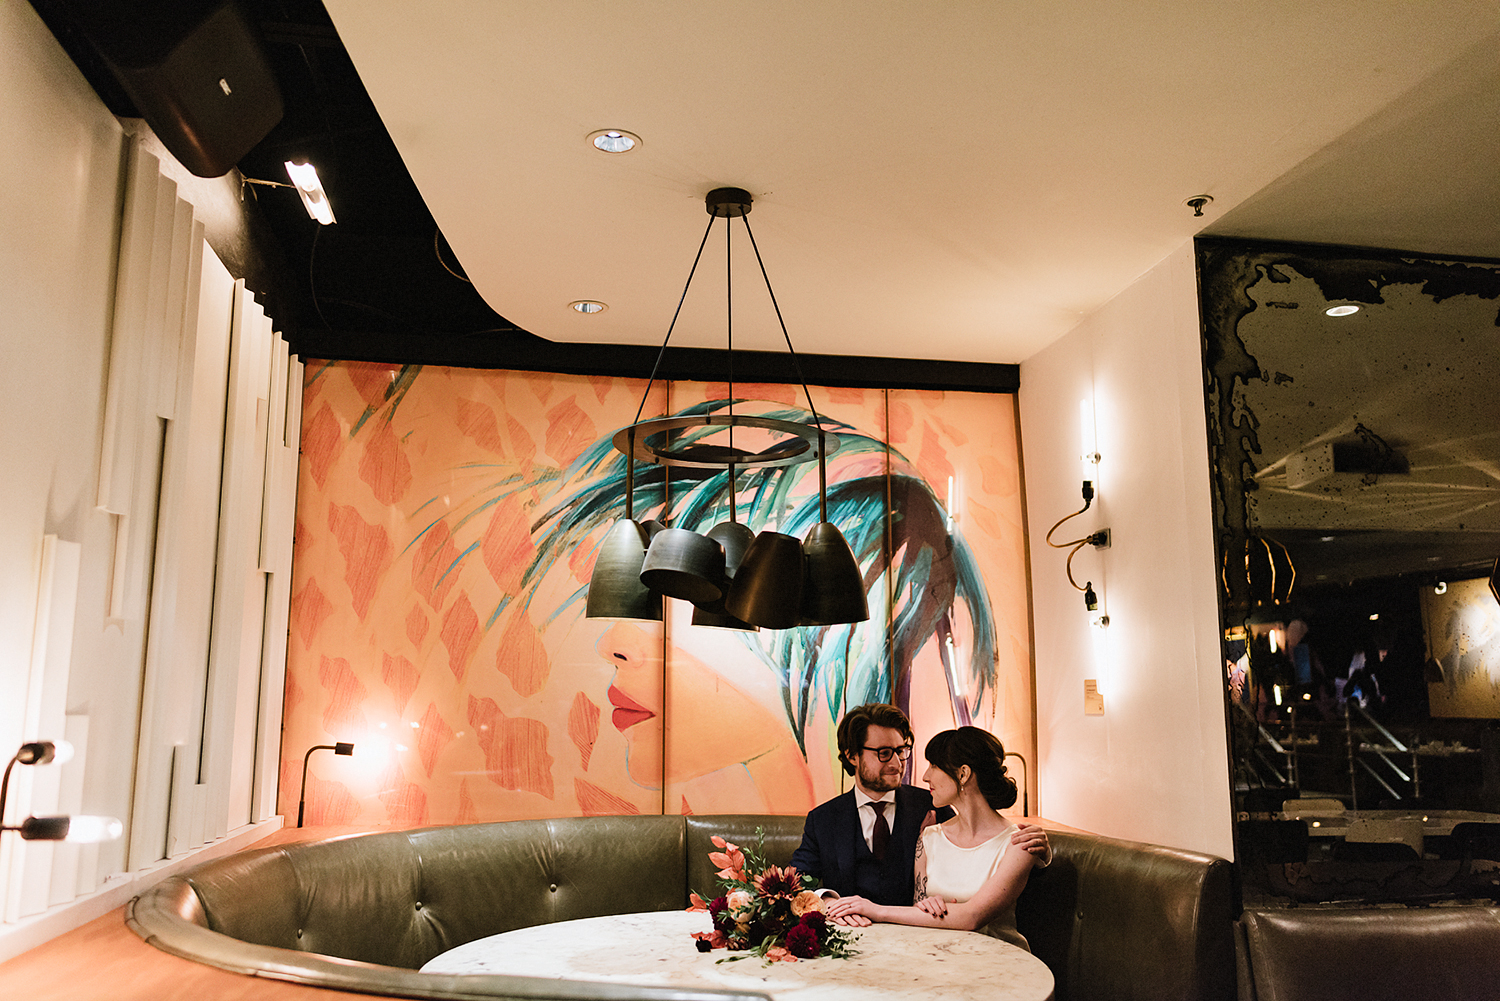 couples-portraits-at-the-drake-hotel-bar-photo-booth-moody-romantic-intimate-inspiration-Toronto-Elopement-at-the-Drake-Hotel-pop-up-Torontos-Best-wedding-photographers-candid-documentary-photojournalistic-elopement-inspiration.jpg